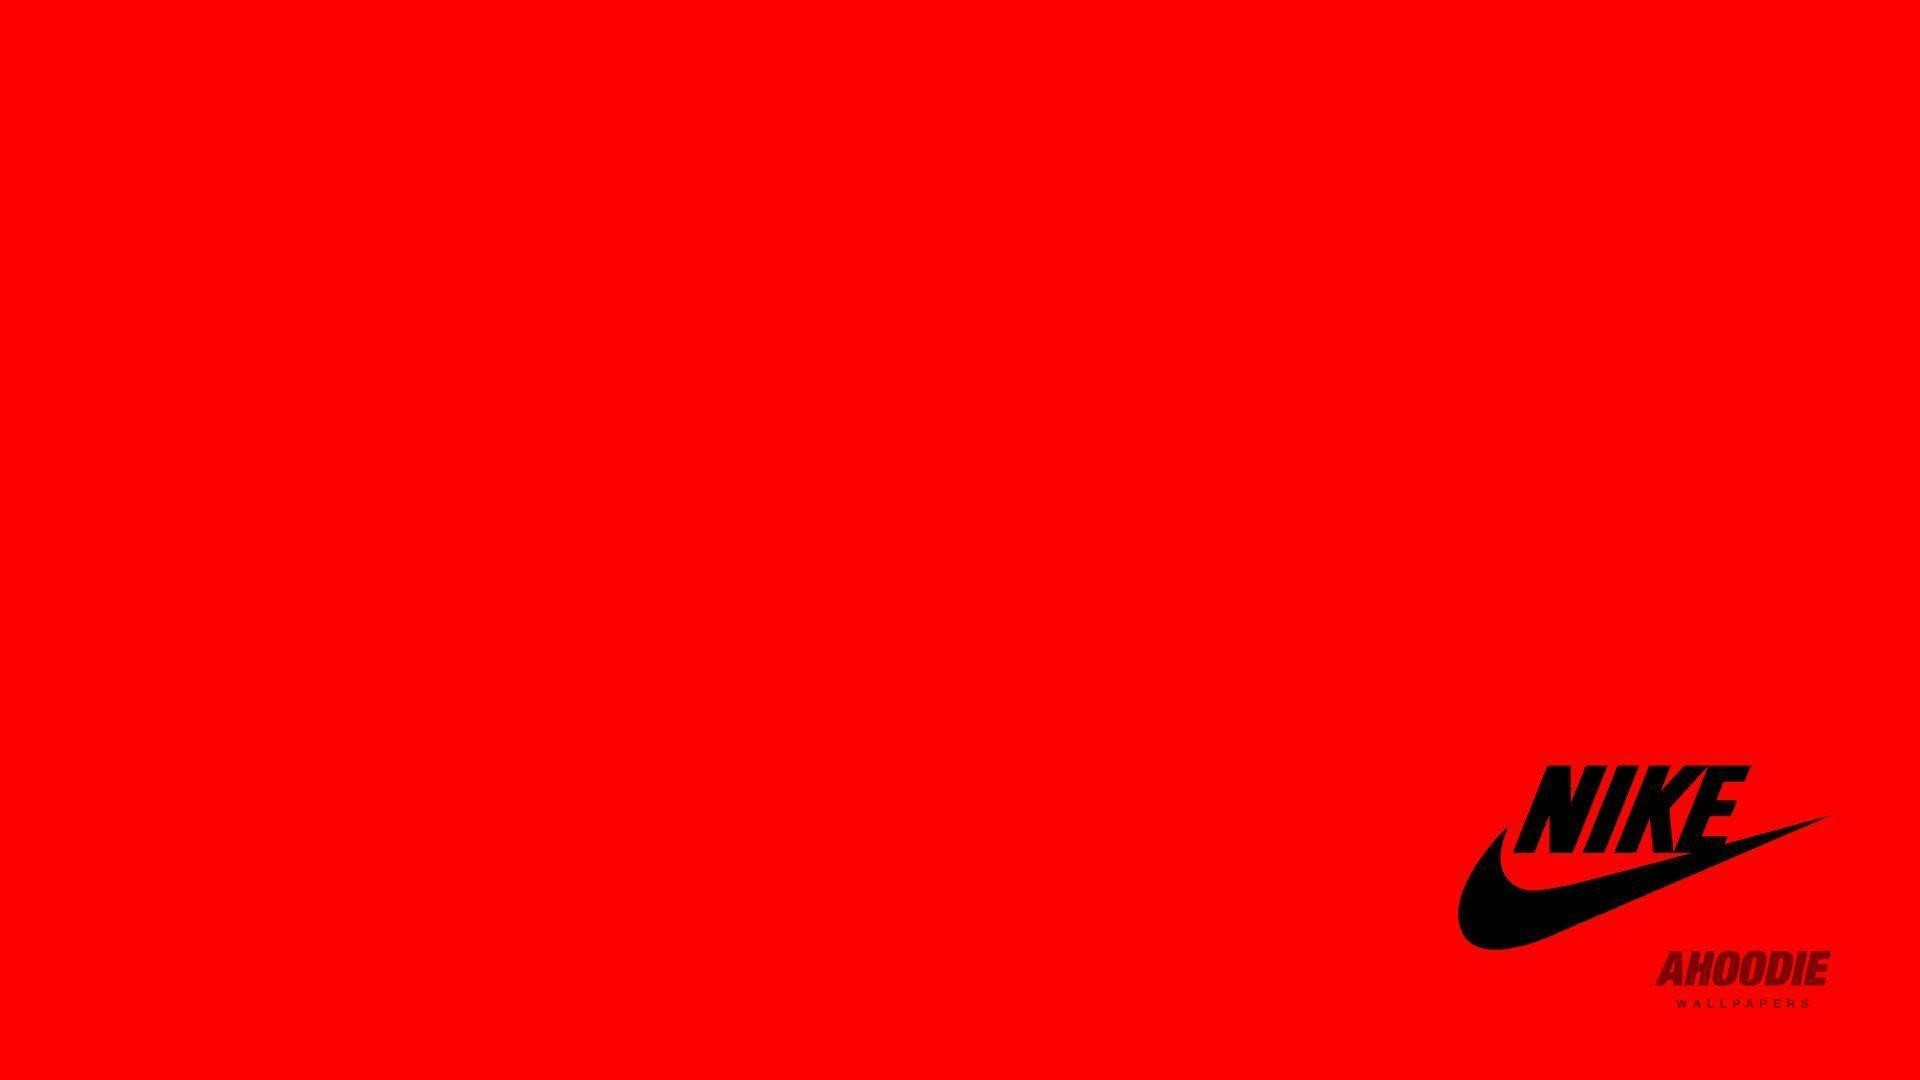 Black And Red iPhone 5 Wallpapers by Martin Wheatley #12